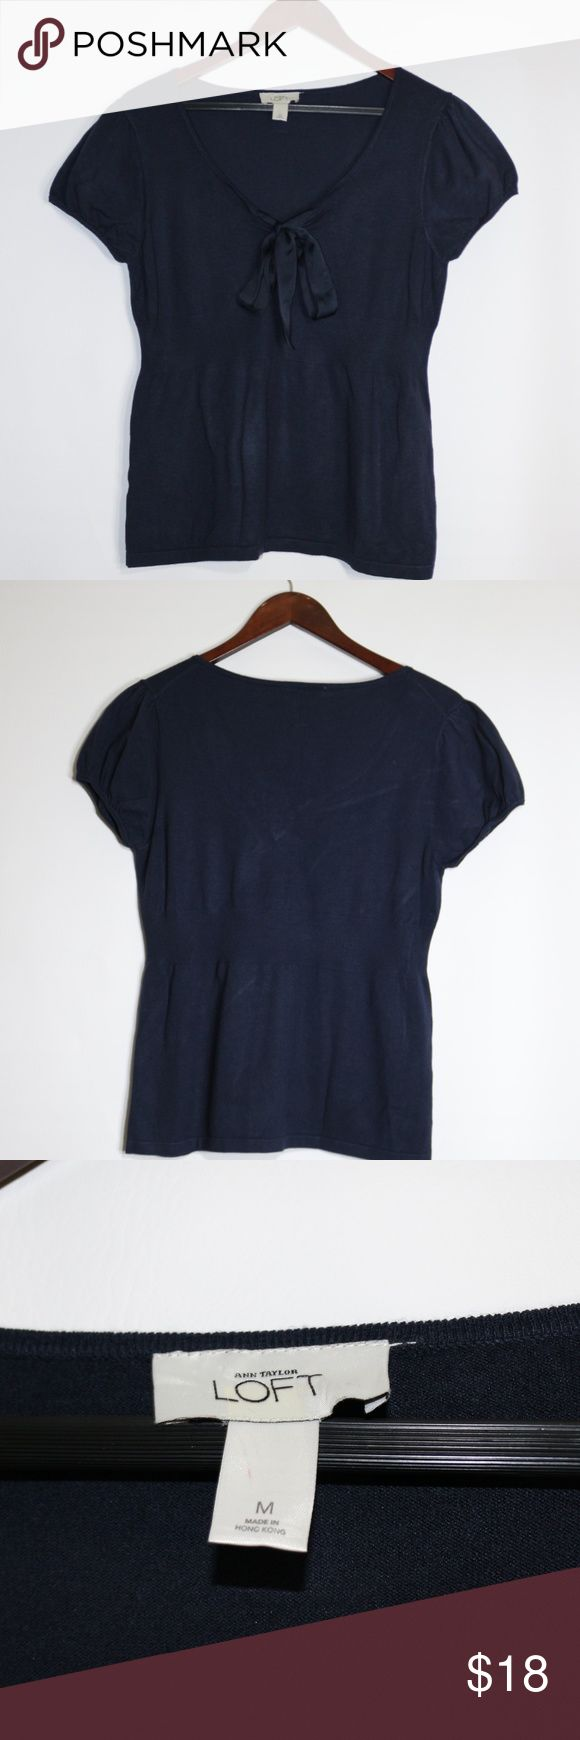 Anne Taylor LOFT navy blue casual blouse with knot Anne Taylor LOFT navy blue casual blouse with knot in womens made in hong kong  measurements chest:34in sleeve:6in length:24in  B-111 LOFT Tops Blouses